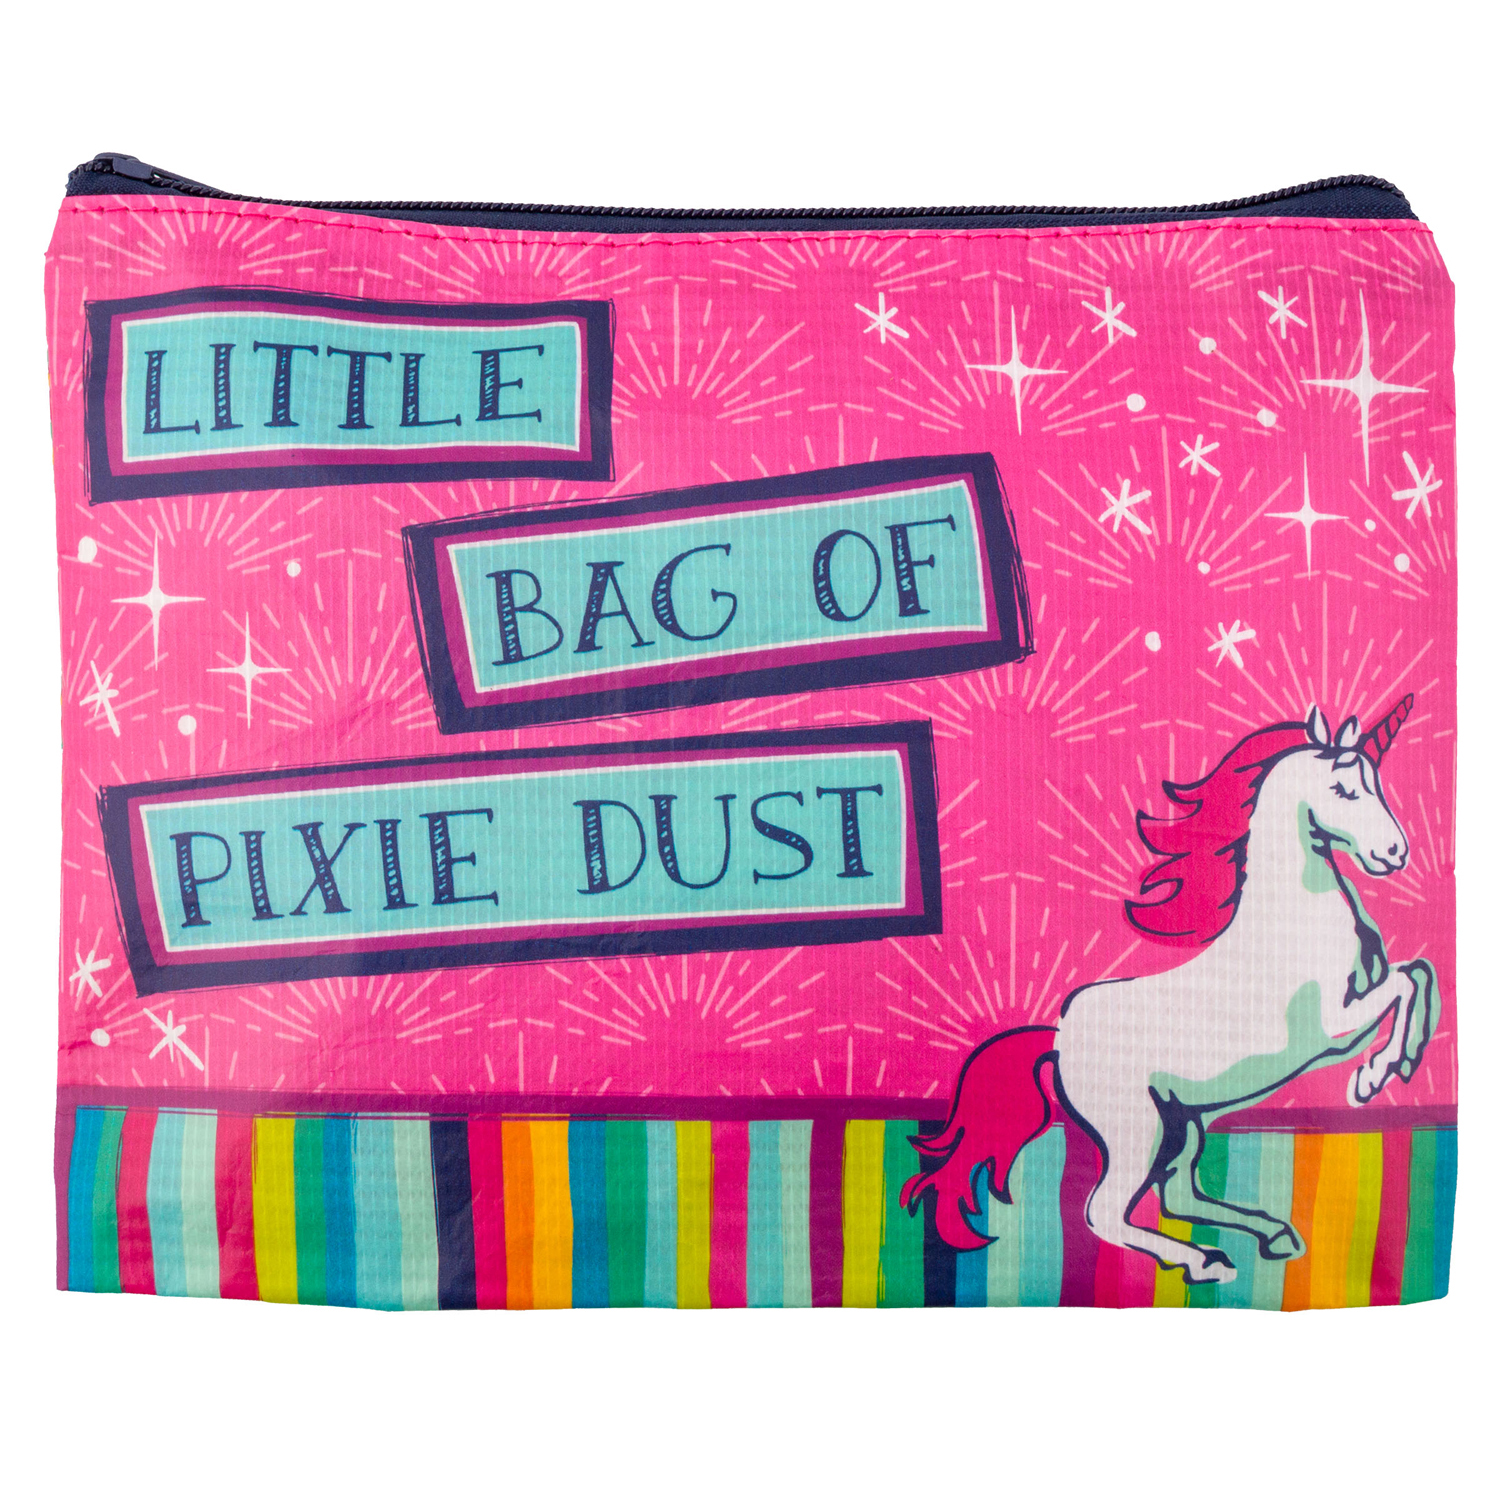 Little Bag of Pixie Dust Carry All Pouch